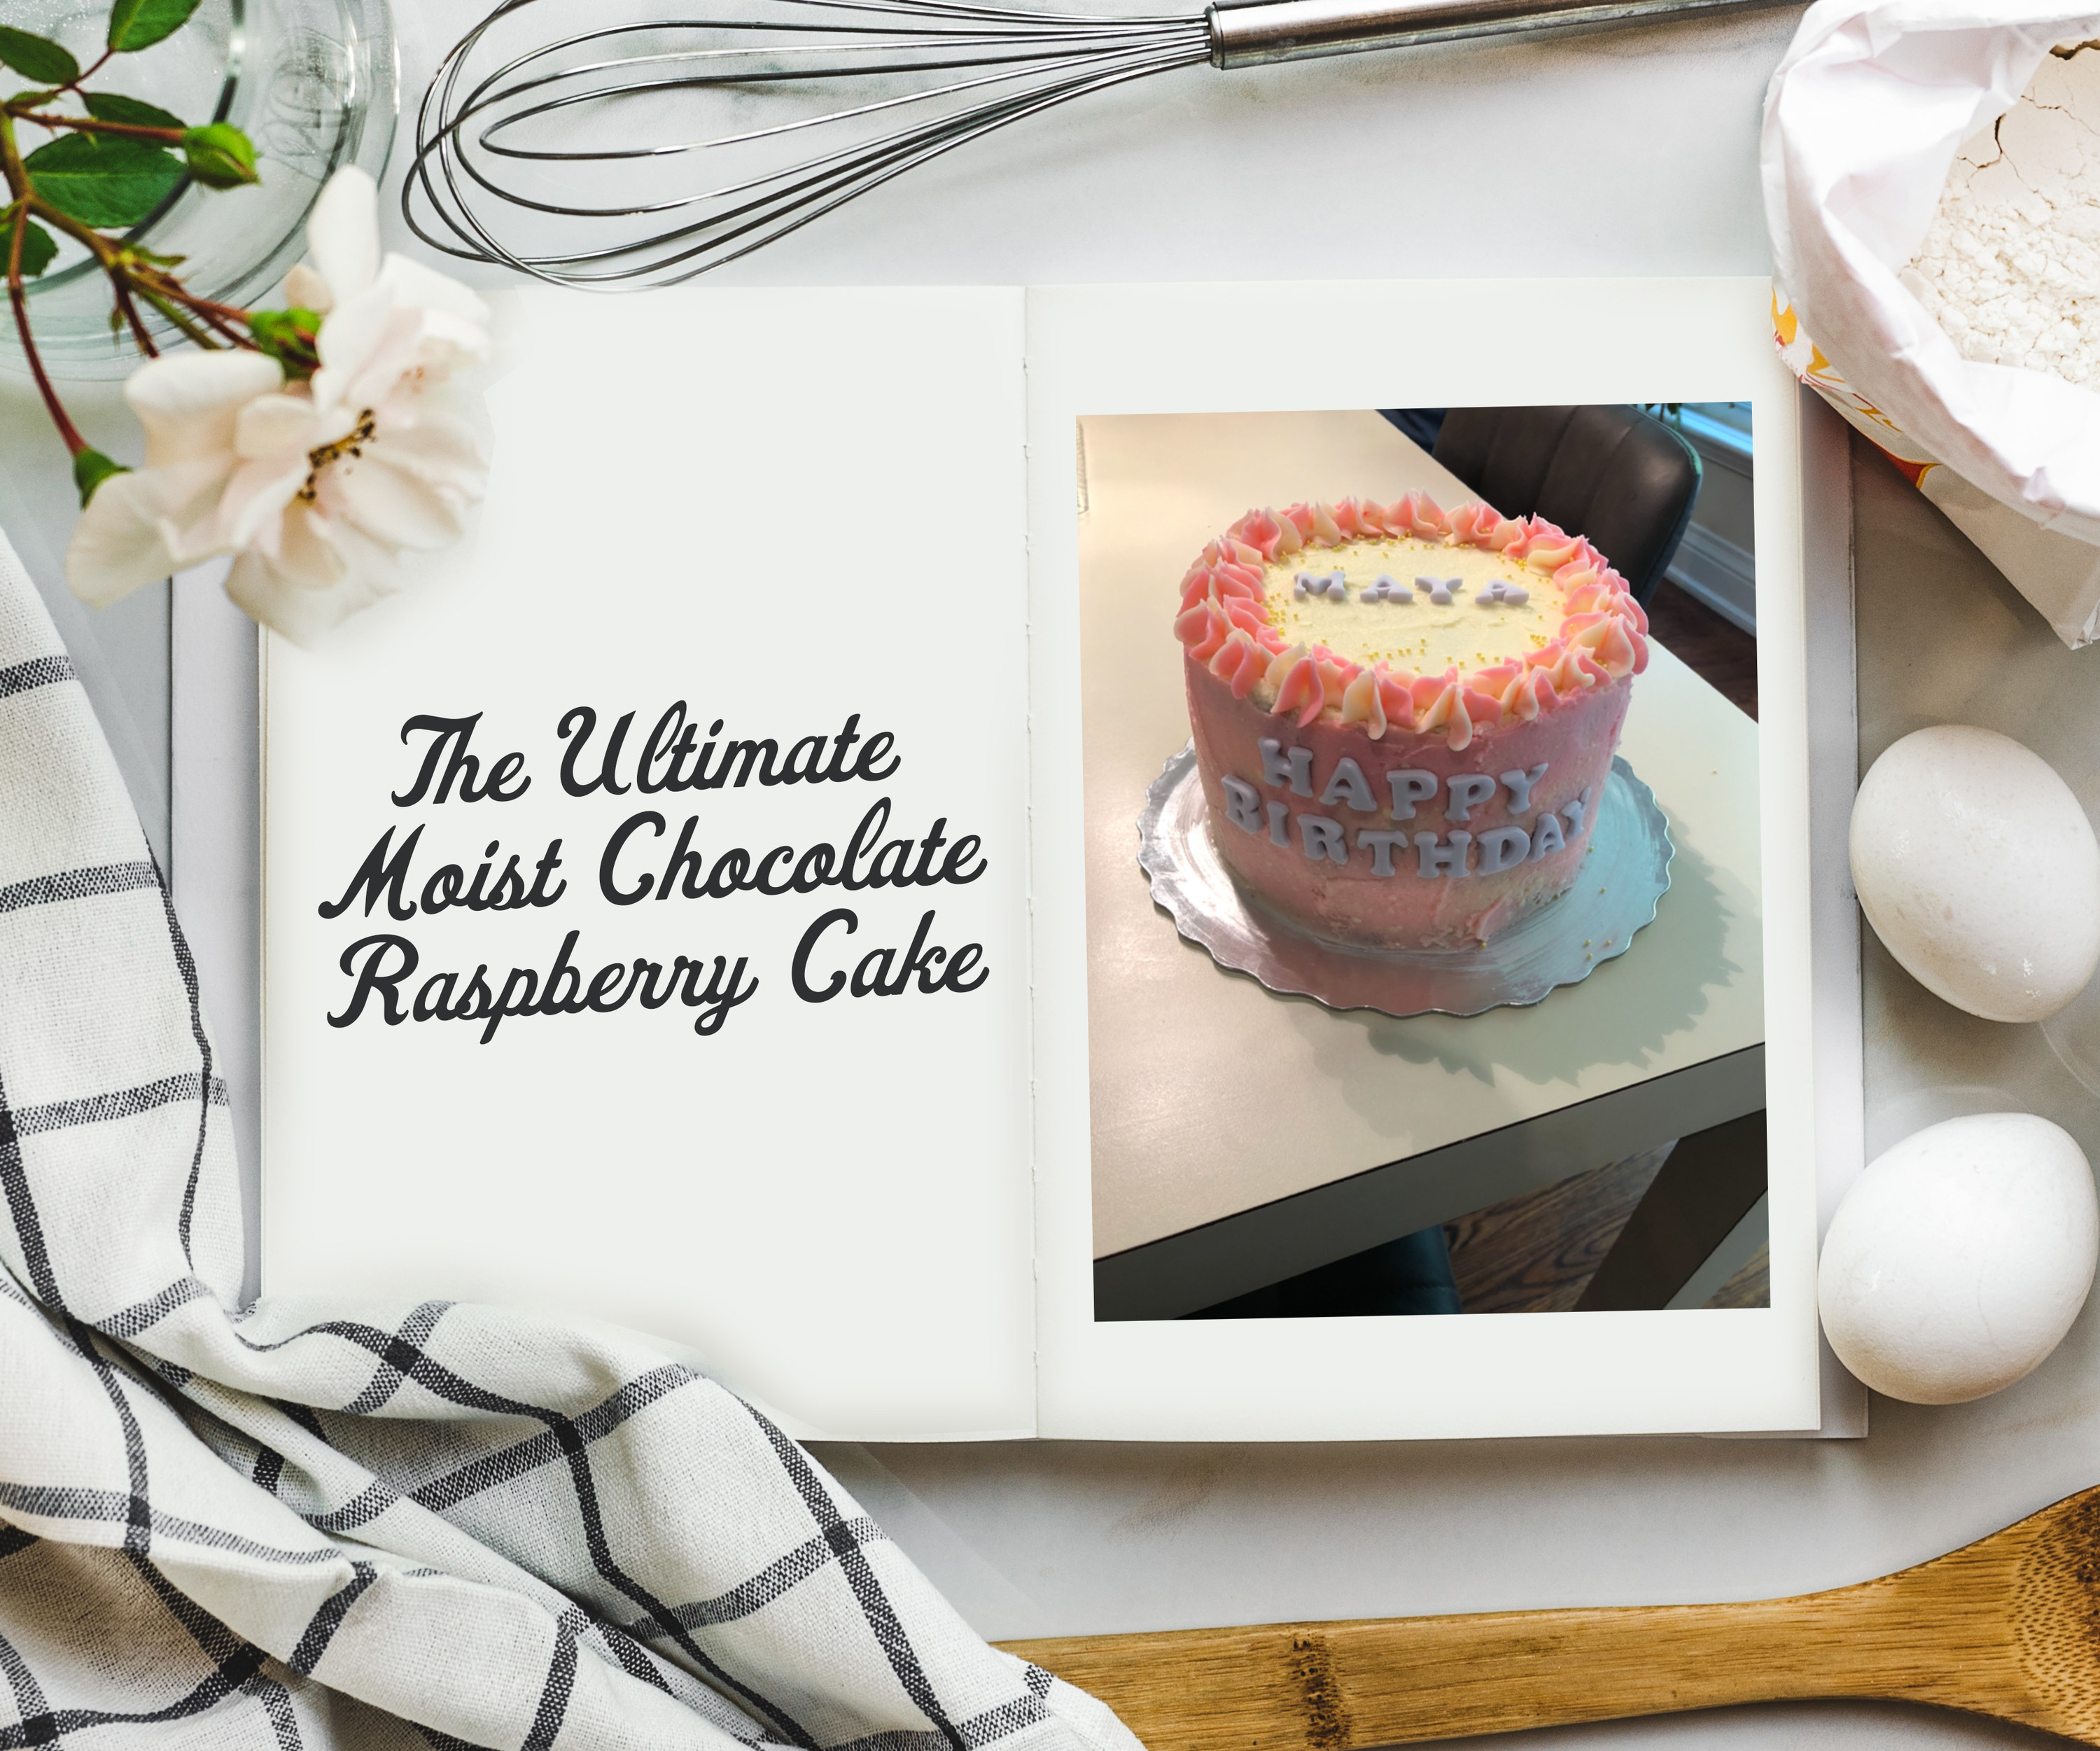 An overhead shot of cookbook on a table surrounded by ingredients and a photo on the inside of a multi-tiered cake that says Happy Birthday on the side. It's covered in pink and white frosting.